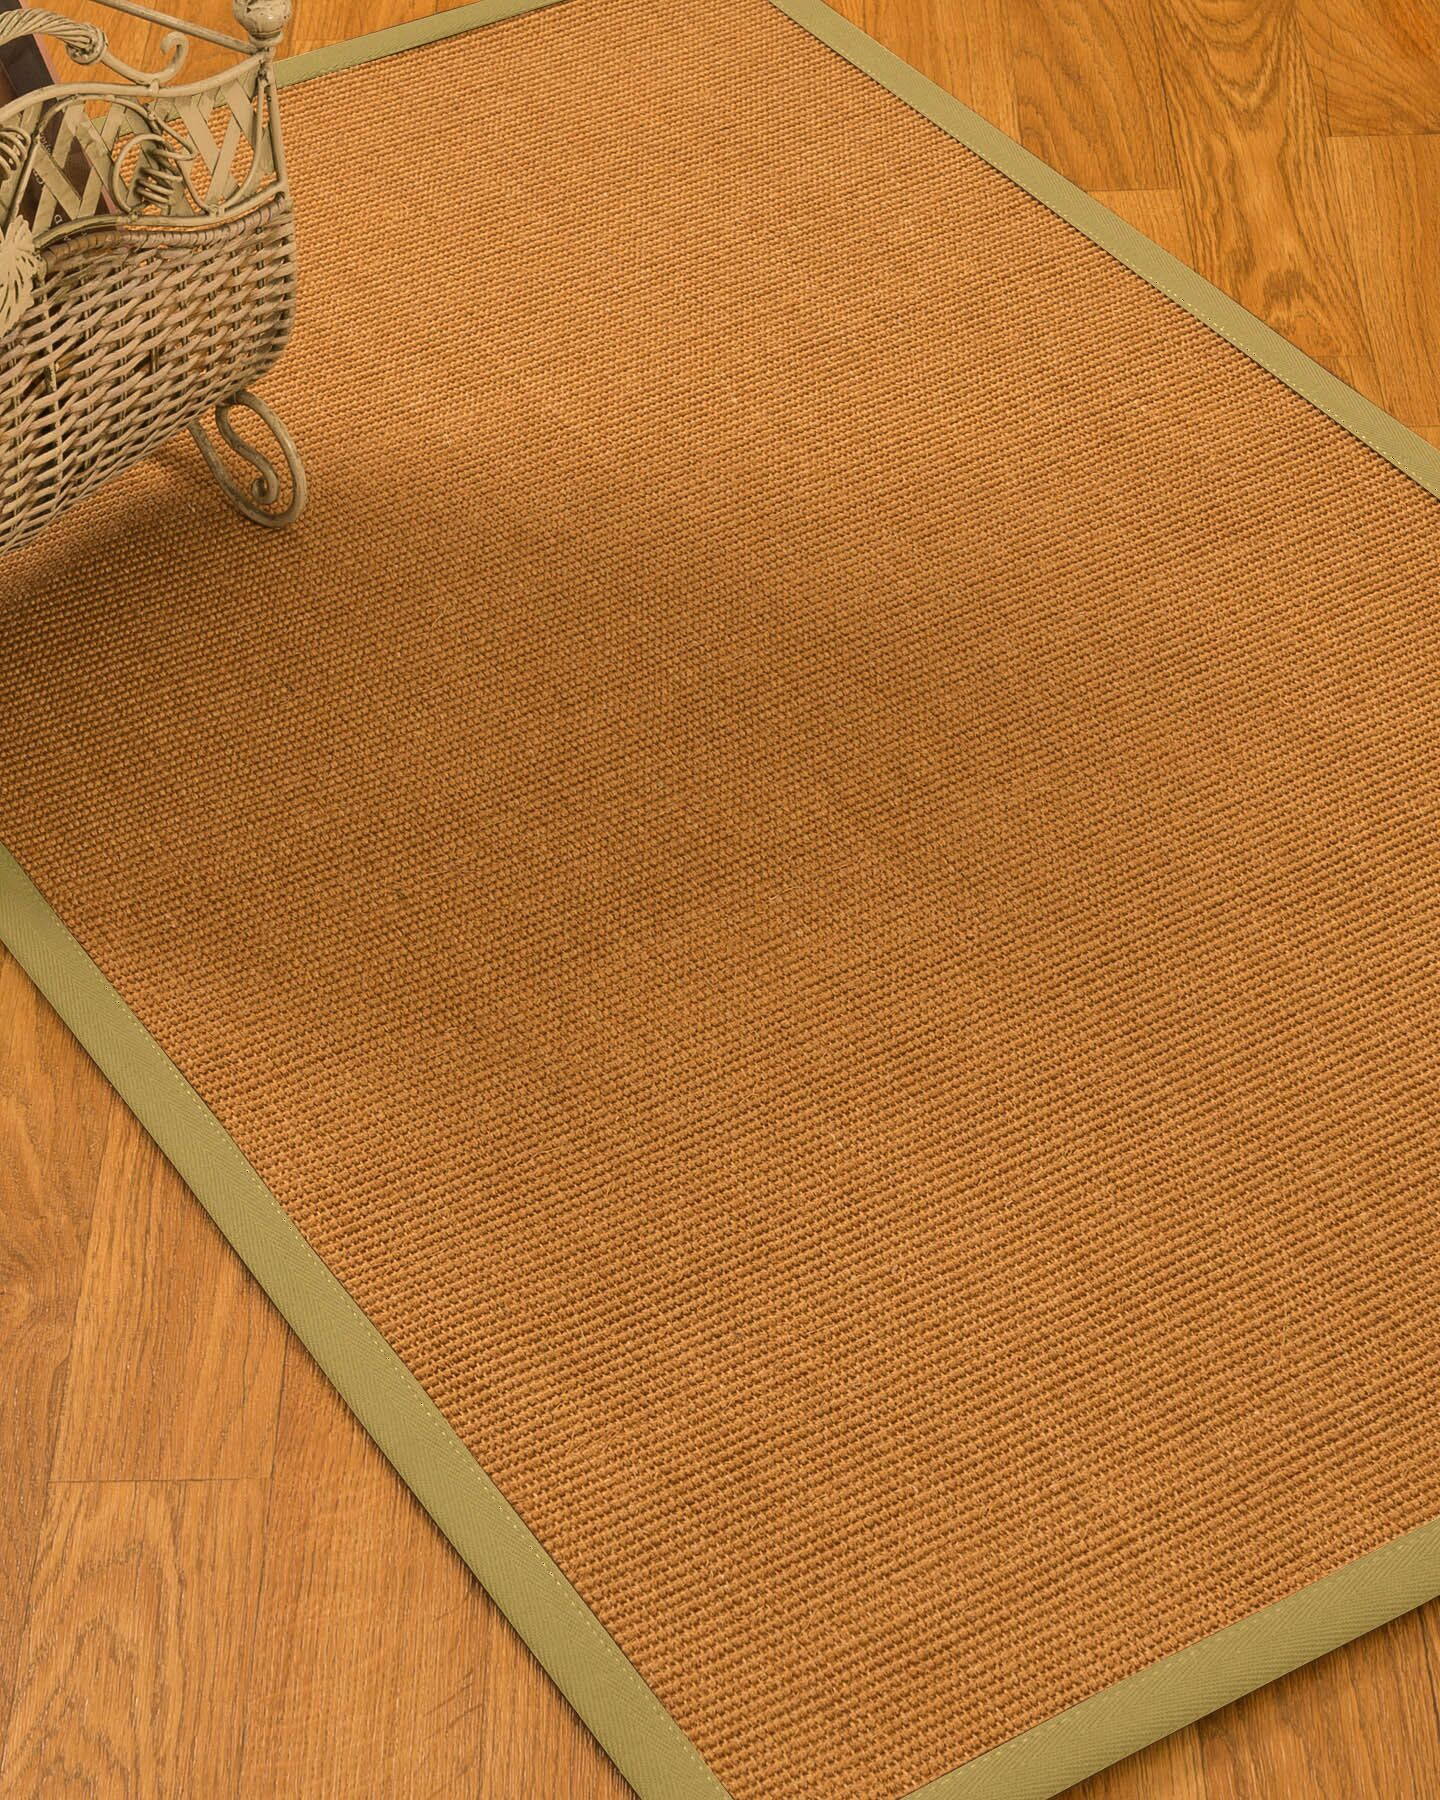 Kemper Border Hand-Woven Brown/Olive Area Rug Rug Size: Rectangle 8' x 10'